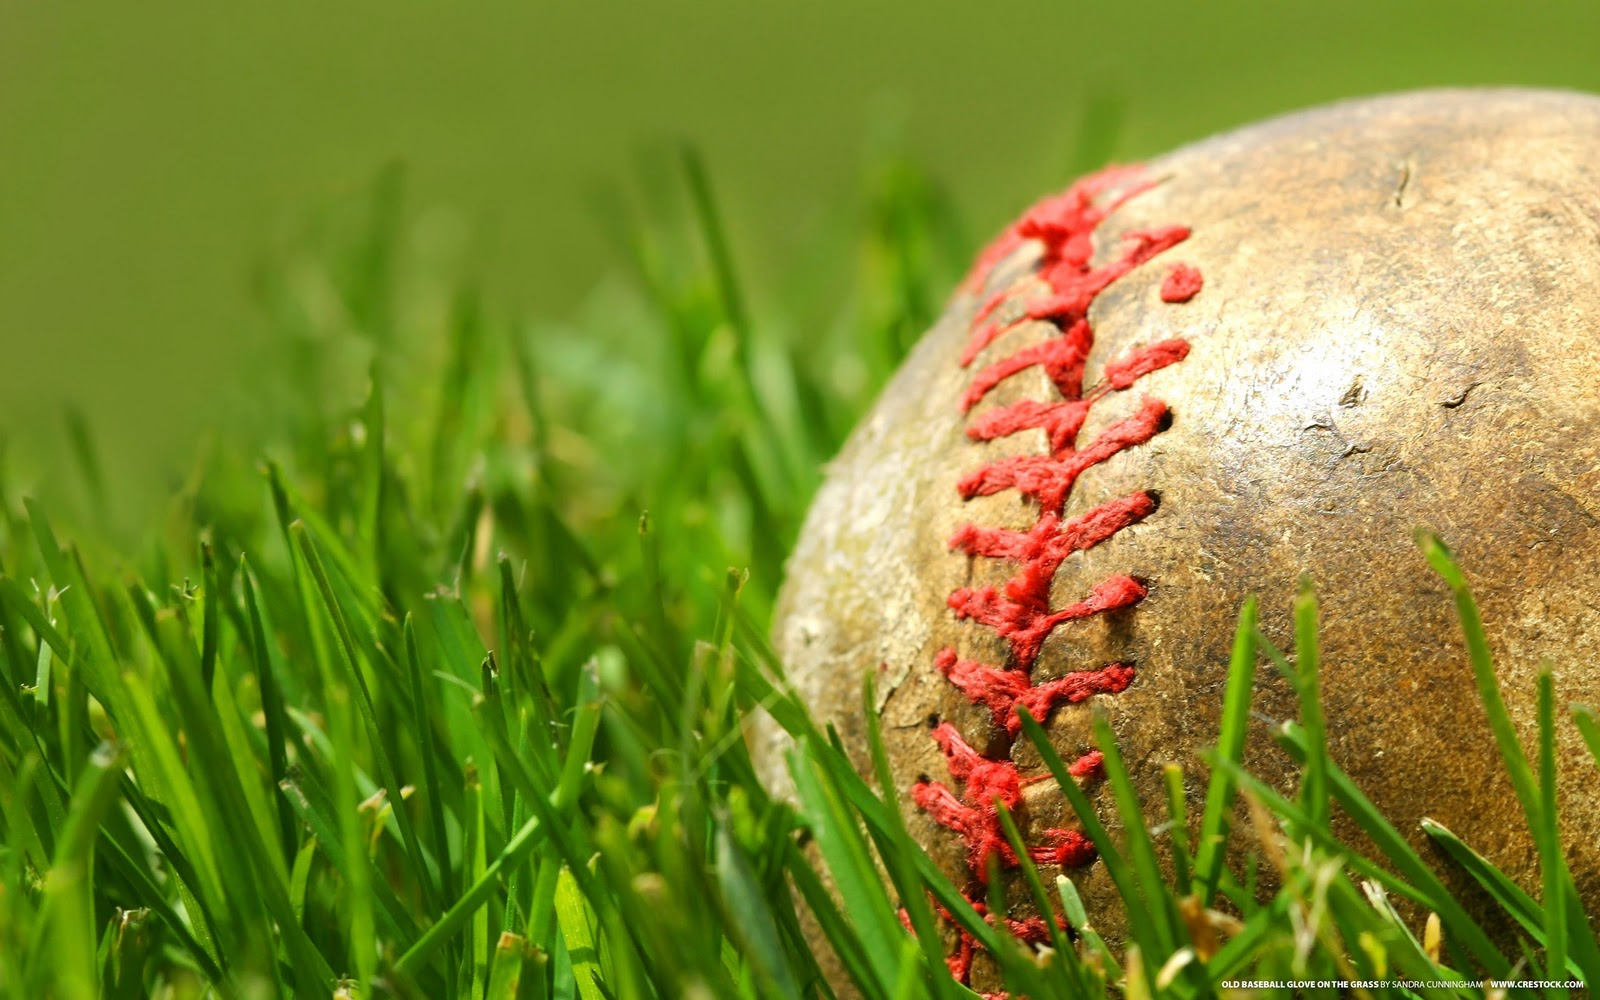 http://2.bp.blogspot.com/-kK4CNTZVw1w/TpAftsqmxQI/AAAAAAAACZU/i_4un5ZkH7E/s1600/The-best-top-desktop-baseball-wallpapers-16-ball-in-the-grass-wallpaper.jpg